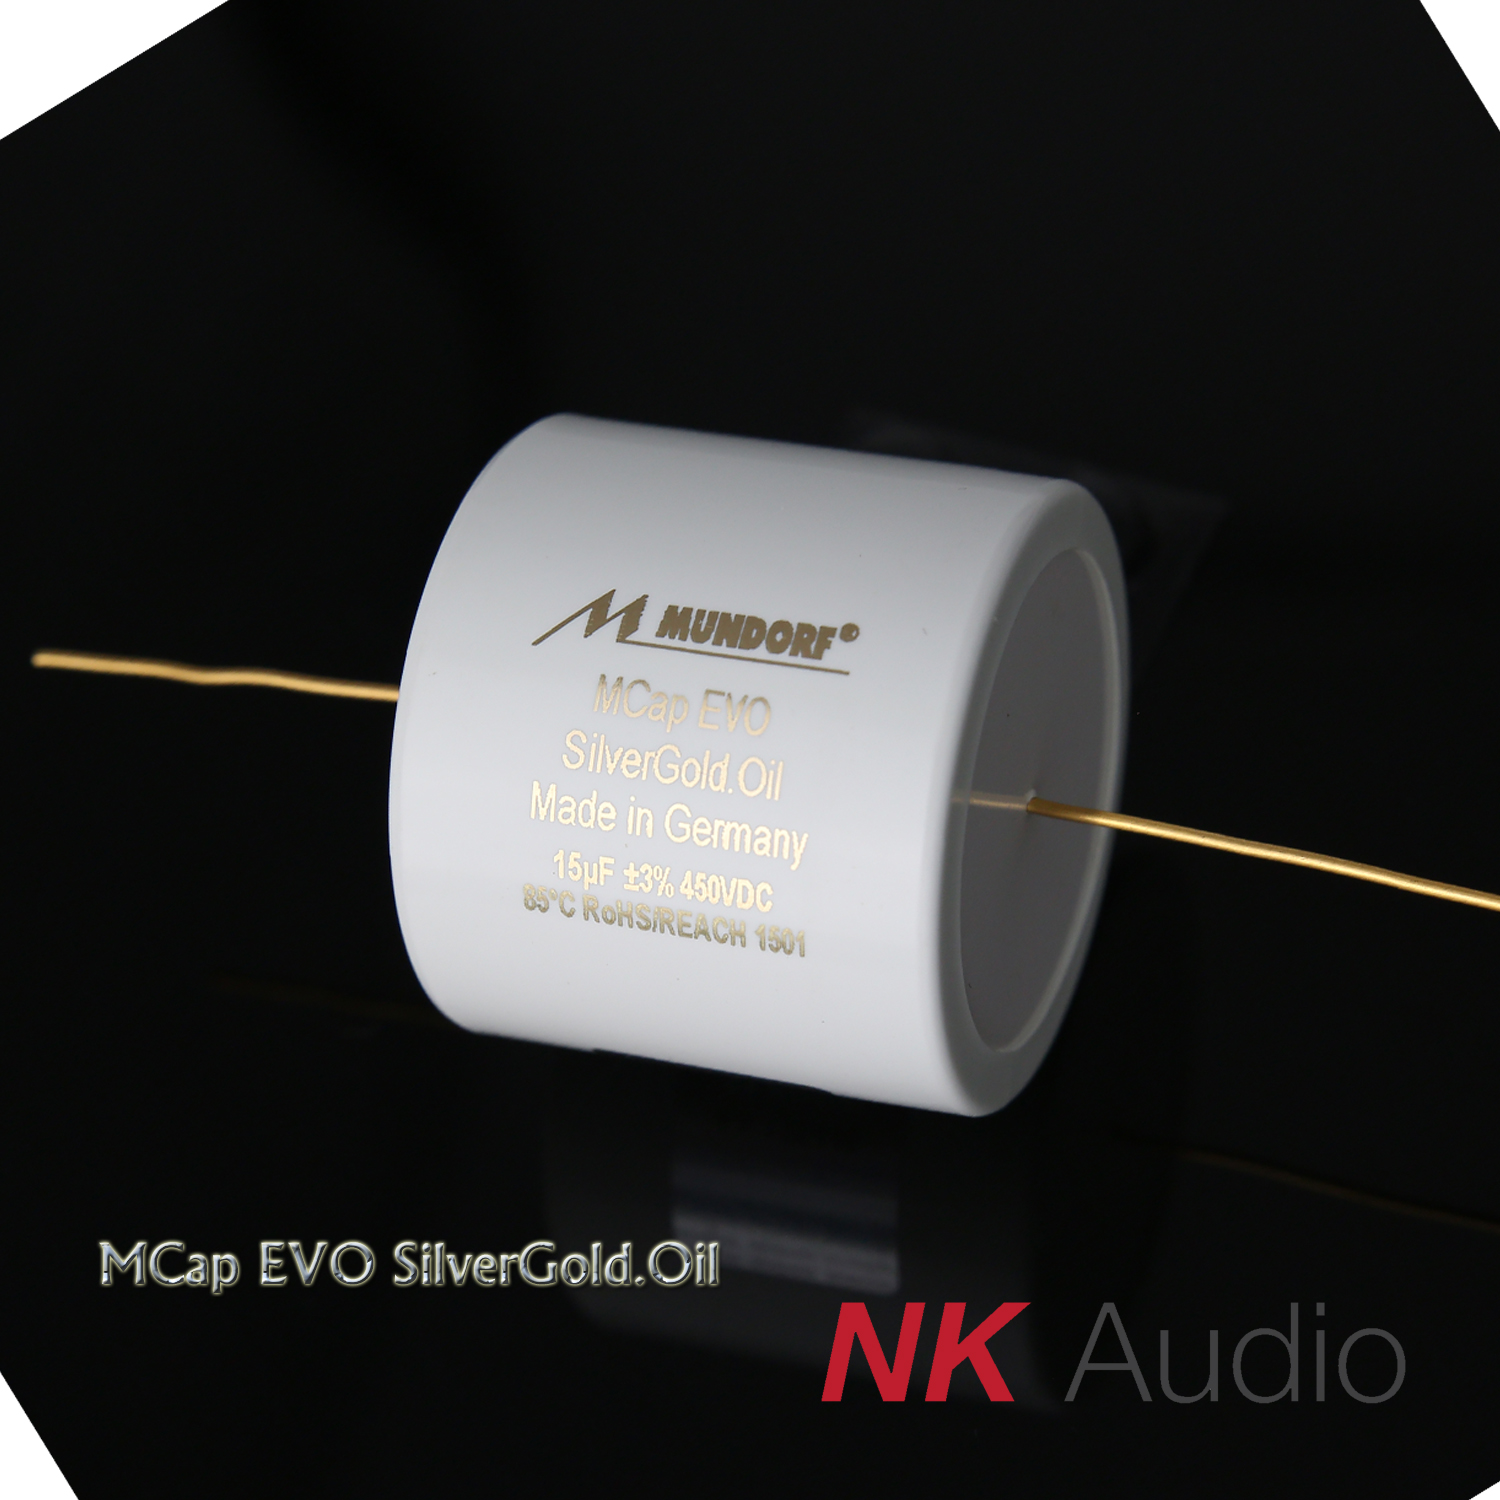 Mundorf Mcap EVO gold and silver oil immersion series audio coupling  capacitor divide capacitor oil immersion capacitor